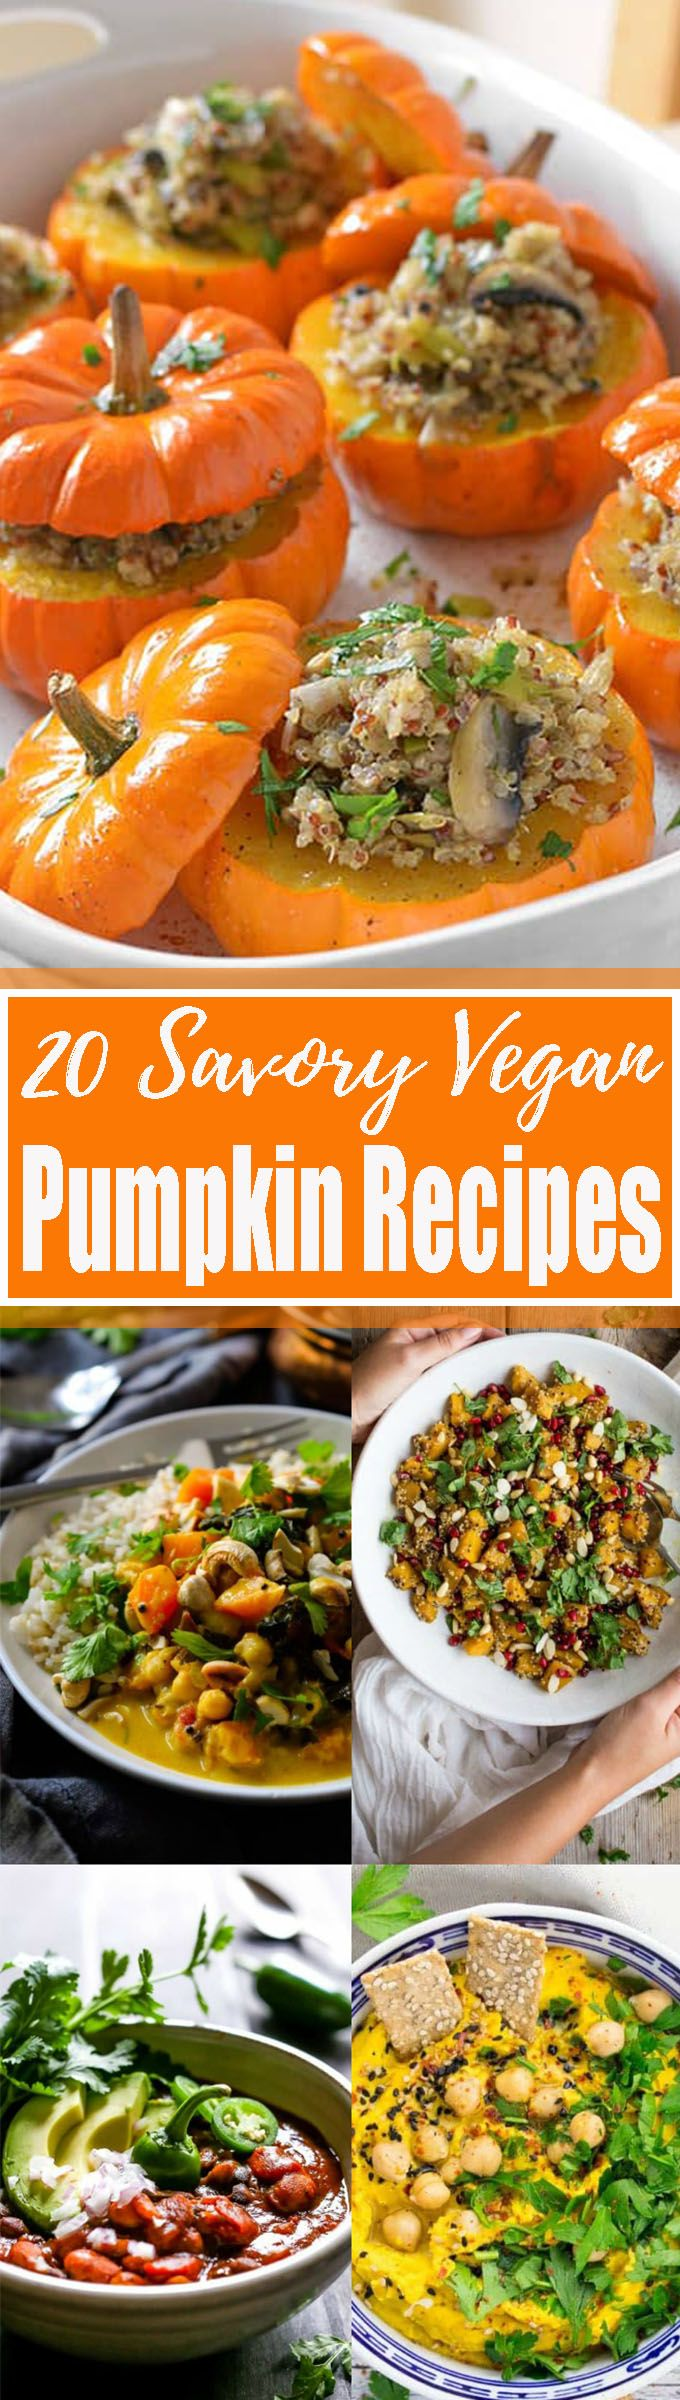 35 Stunning Vegan Pumpkin Recipes You Need To Try This Fall!! Yaay! Pumpkin season is finally here! I'm a real pumpkin addict, so I just had to put together a massive roundup of delicious vegan pumpkin recipes. <3 | veganheaven.org